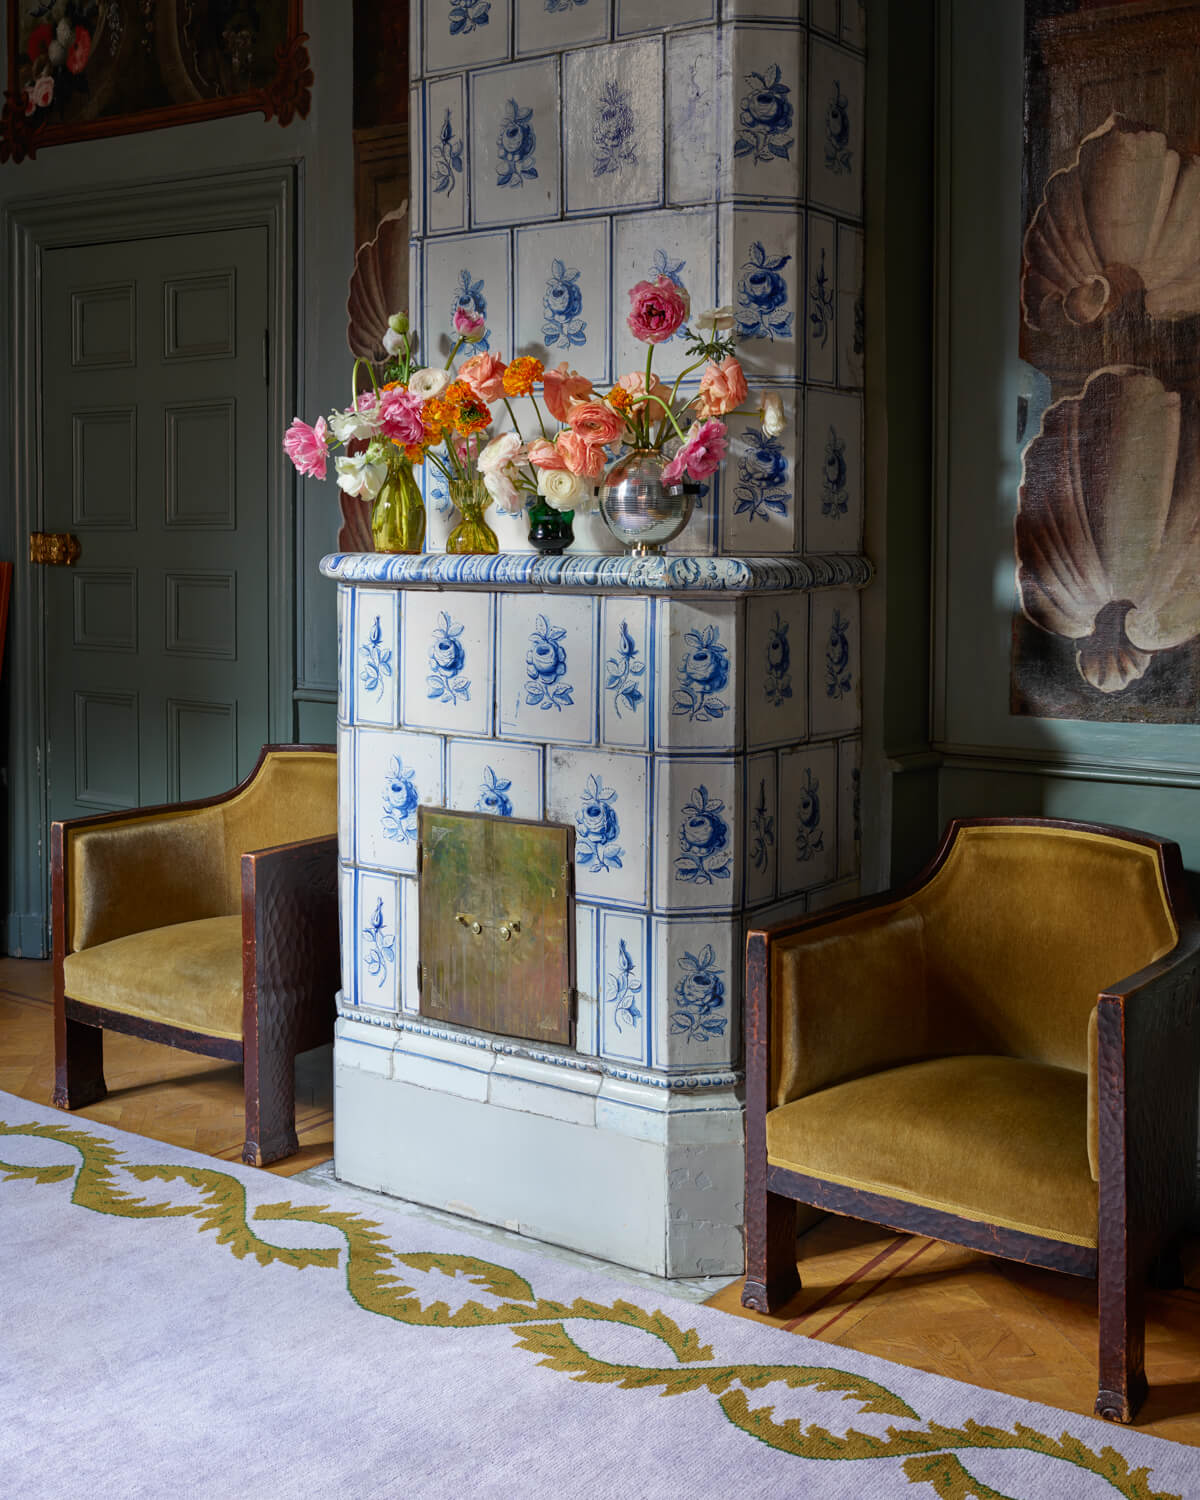 Climbing Vine rug displayed in a beautiful room with an old, decorated tiled stove.